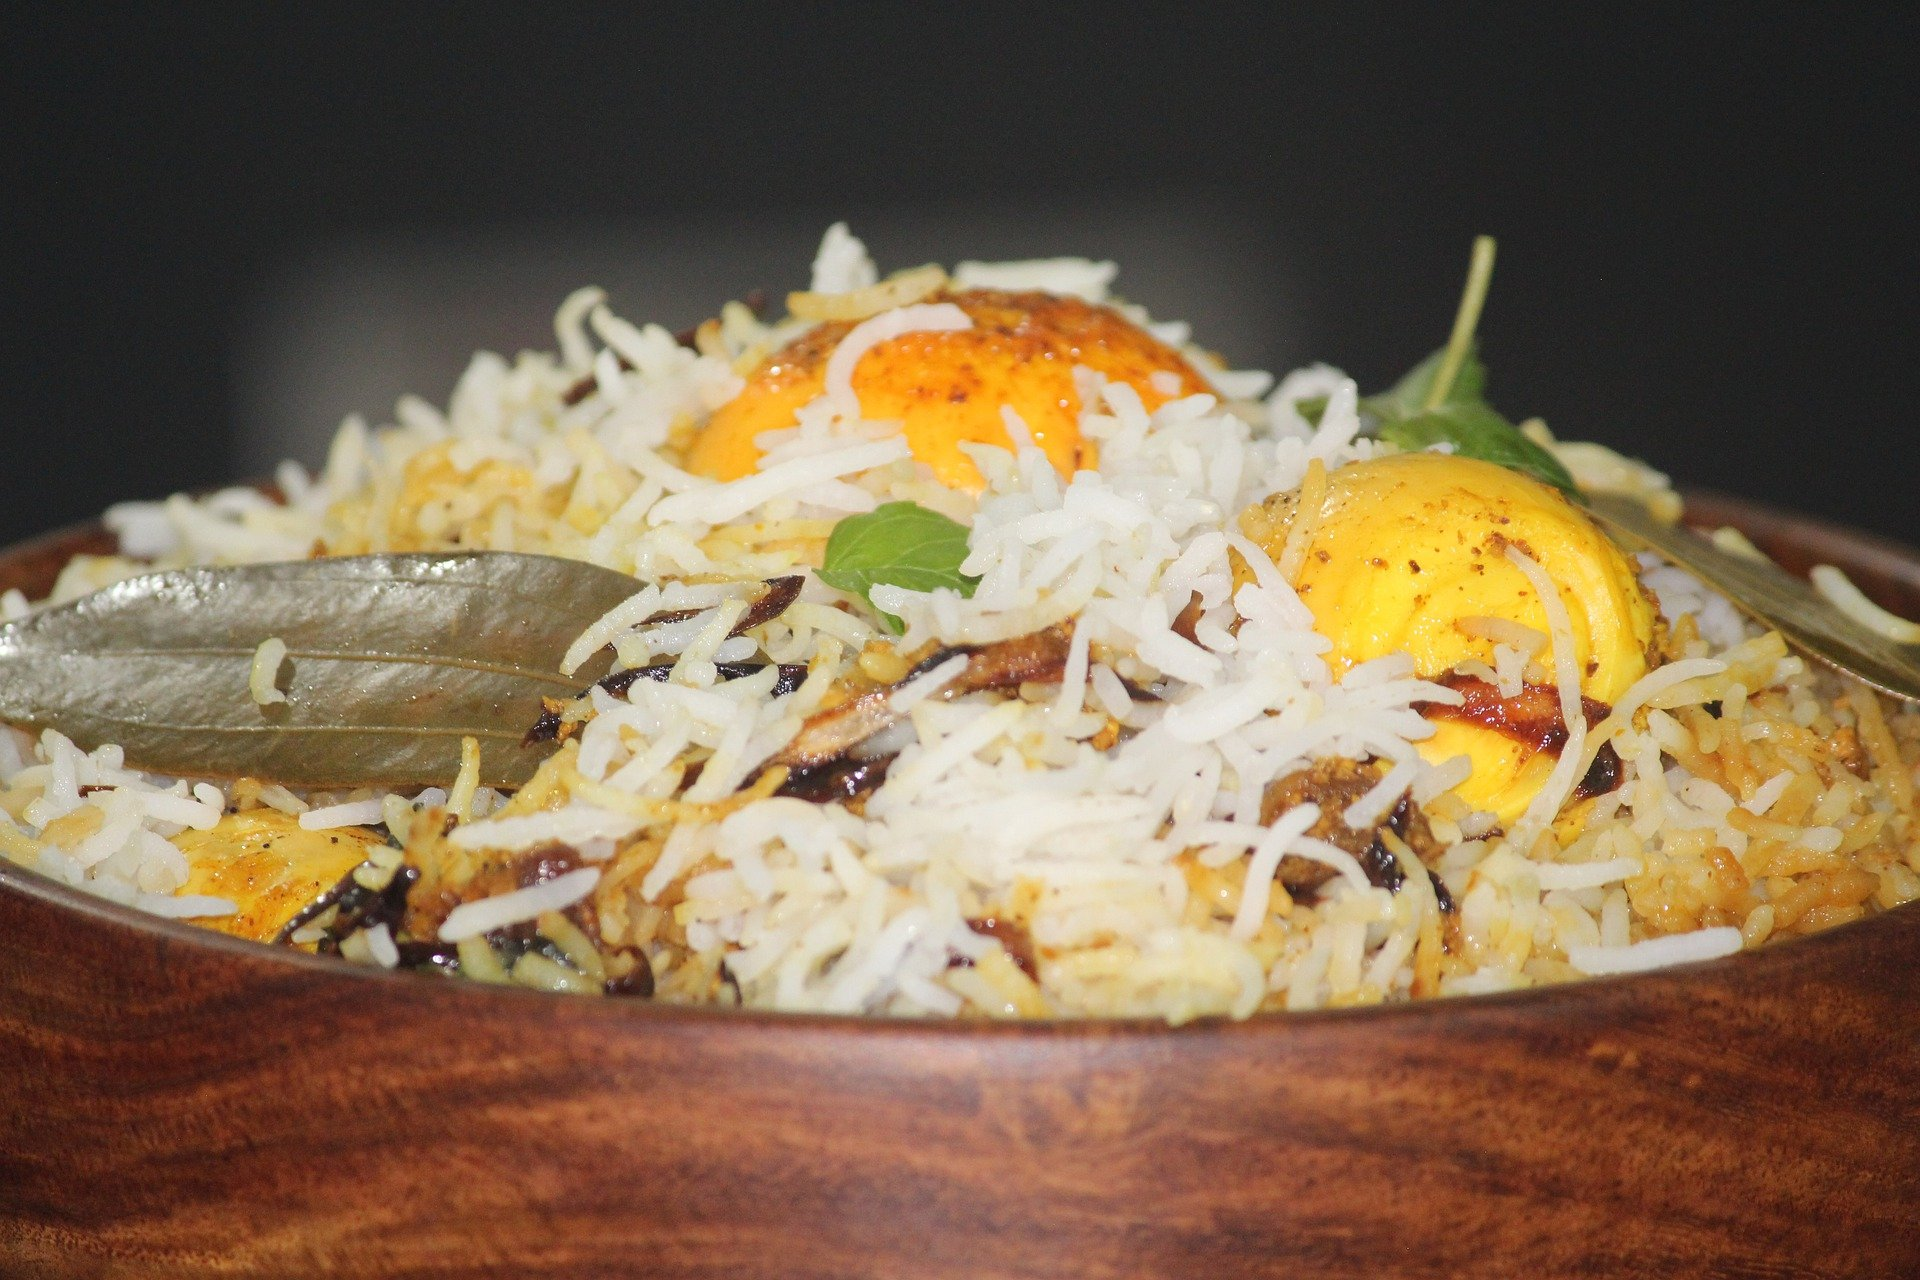 Best biryani in Hyderabad?